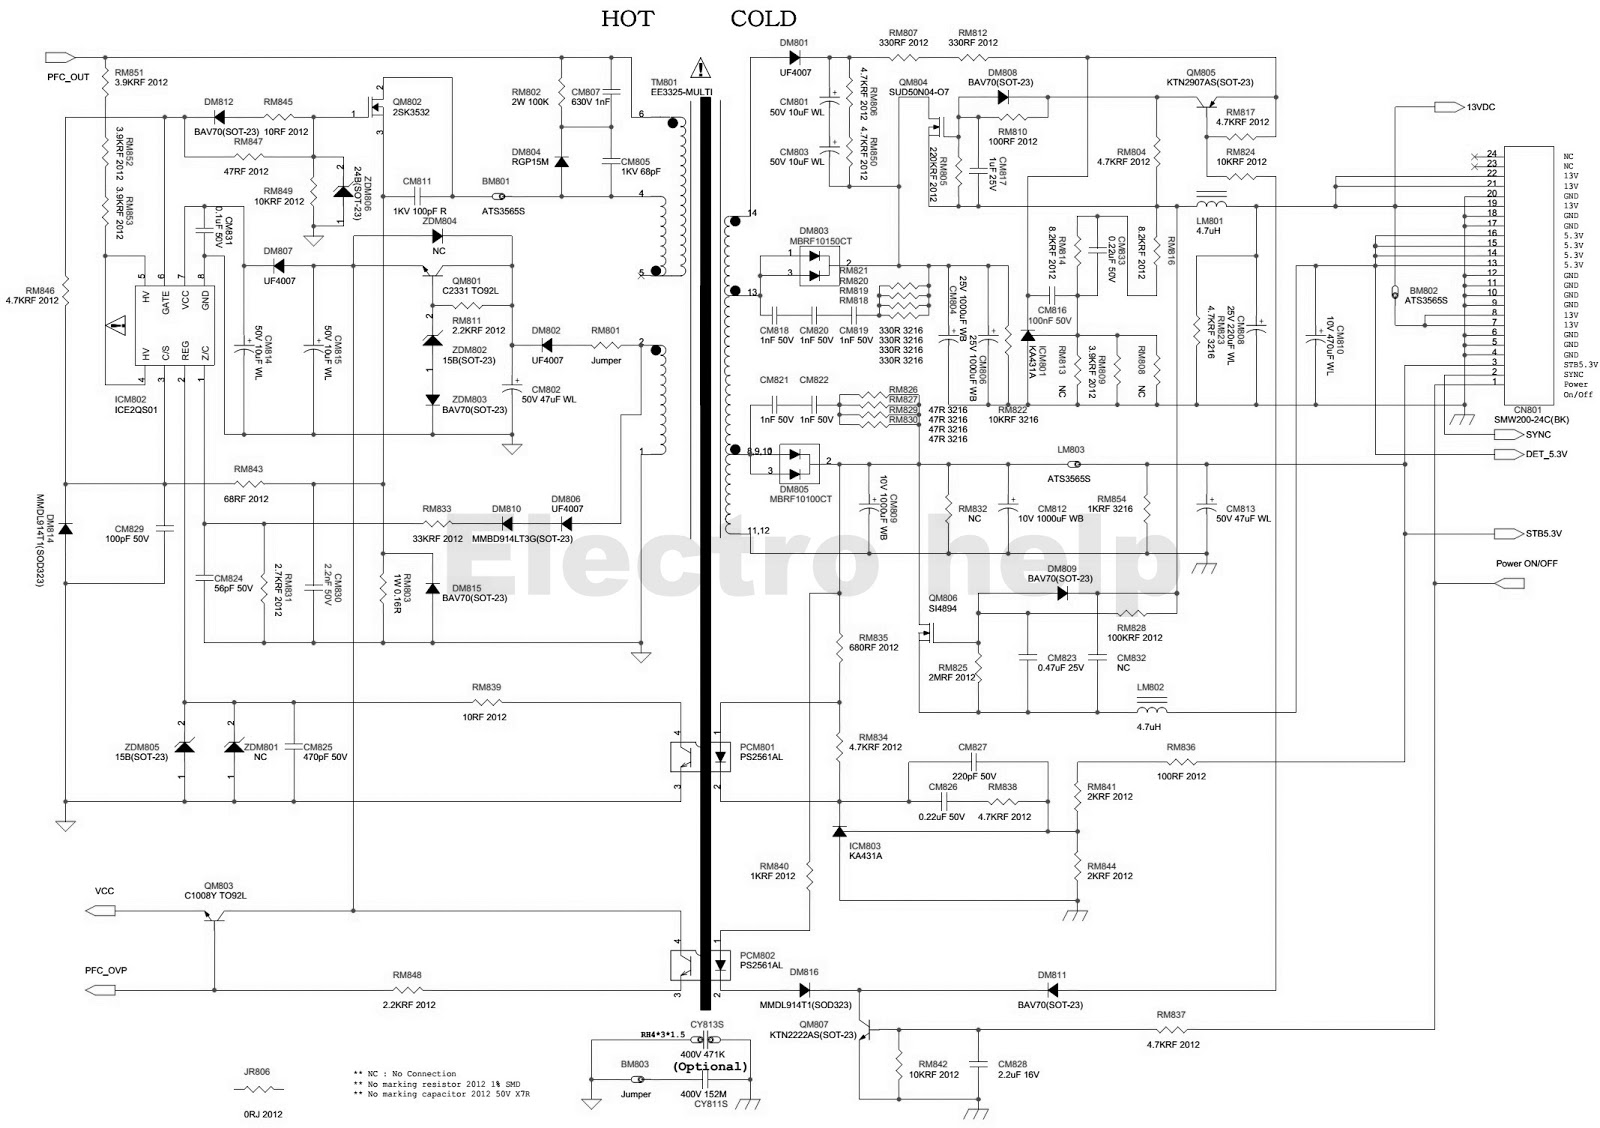 samsung lcd tv smps schematic bn44 00197 pfc standby and multi bl inverter [ 1600 x 1128 Pixel ]